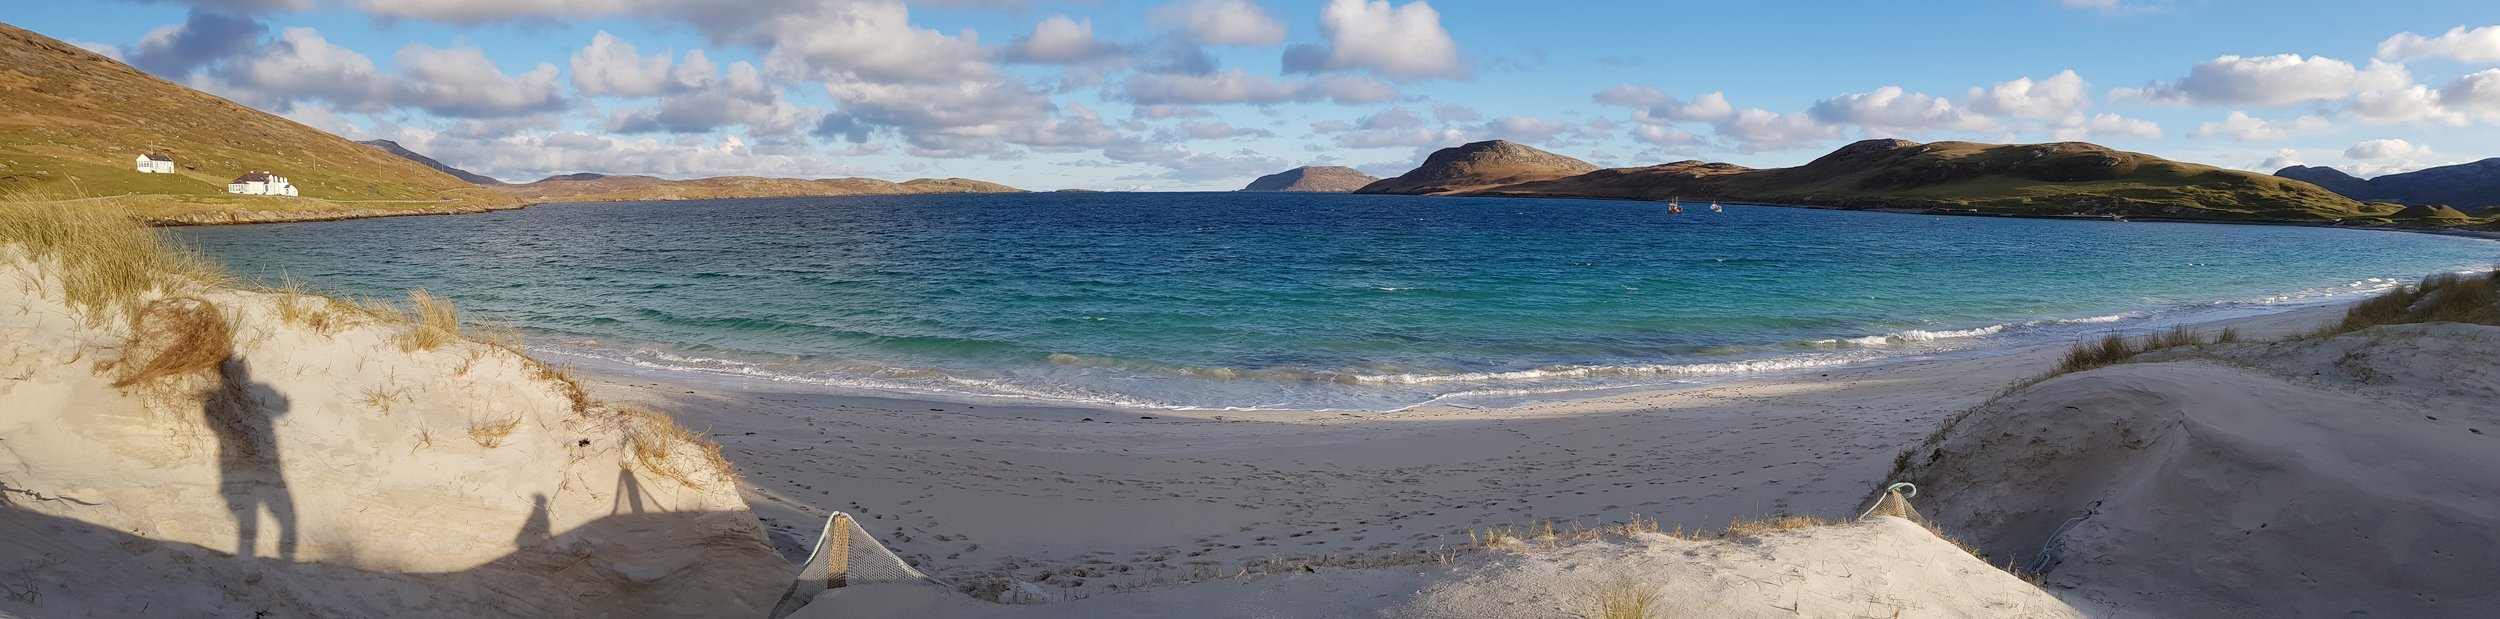 Vatersay Bay at its finest